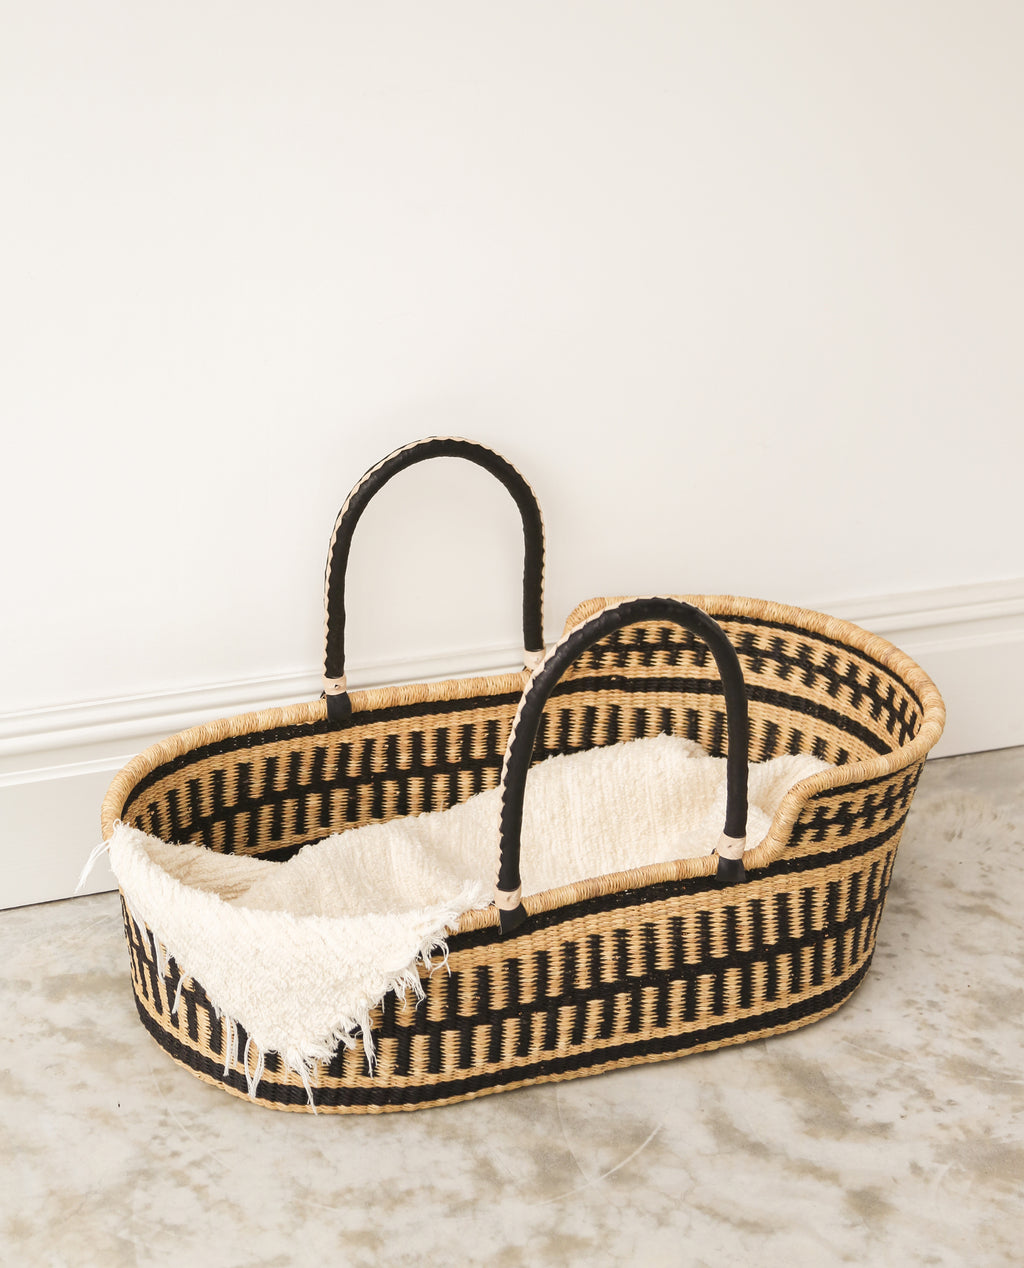 ADE Handwoven Moses Basket With Leather Handles